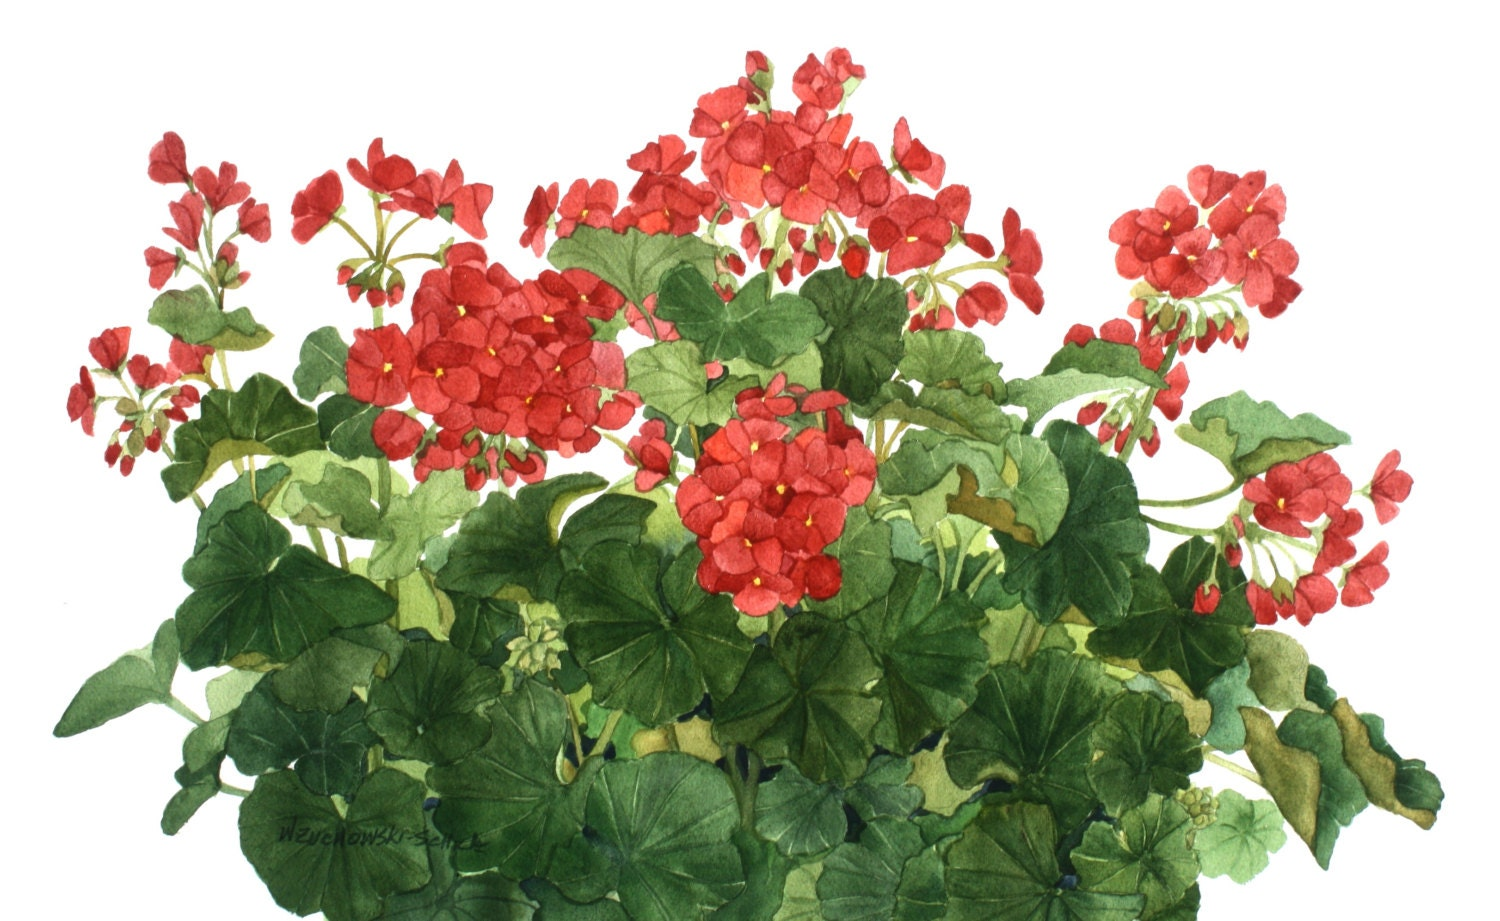 Red Geranium 2 Watercolor Painting Reproduction By Wanda S